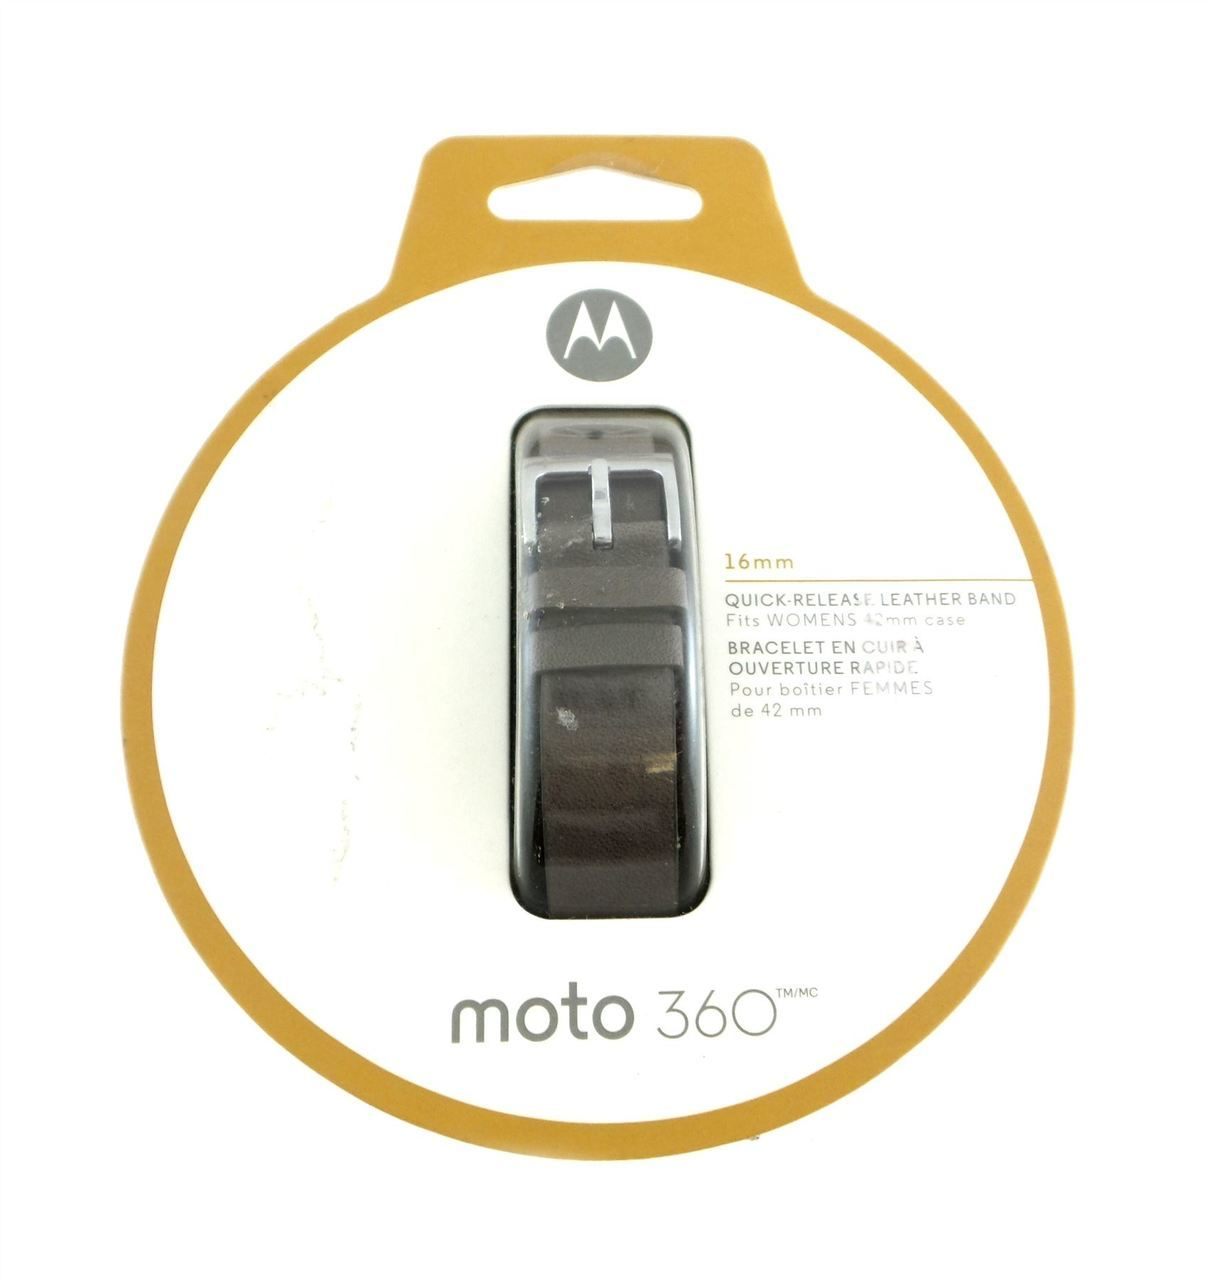 Motorola Moto 360 16mm Leather Band Women's Smartwatches Gray 89852N